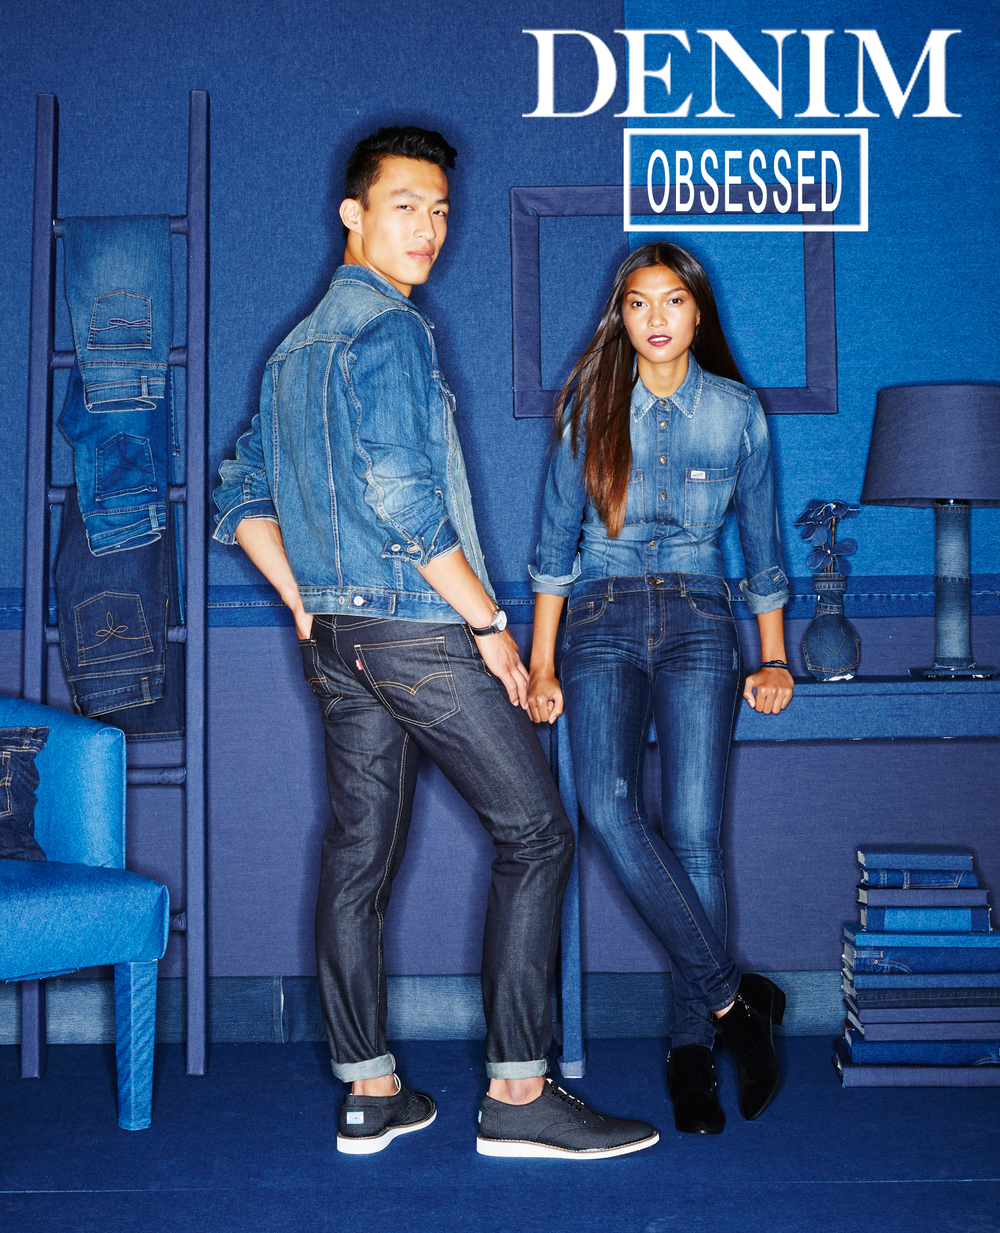 Obsessed-with-denim-4.jpg